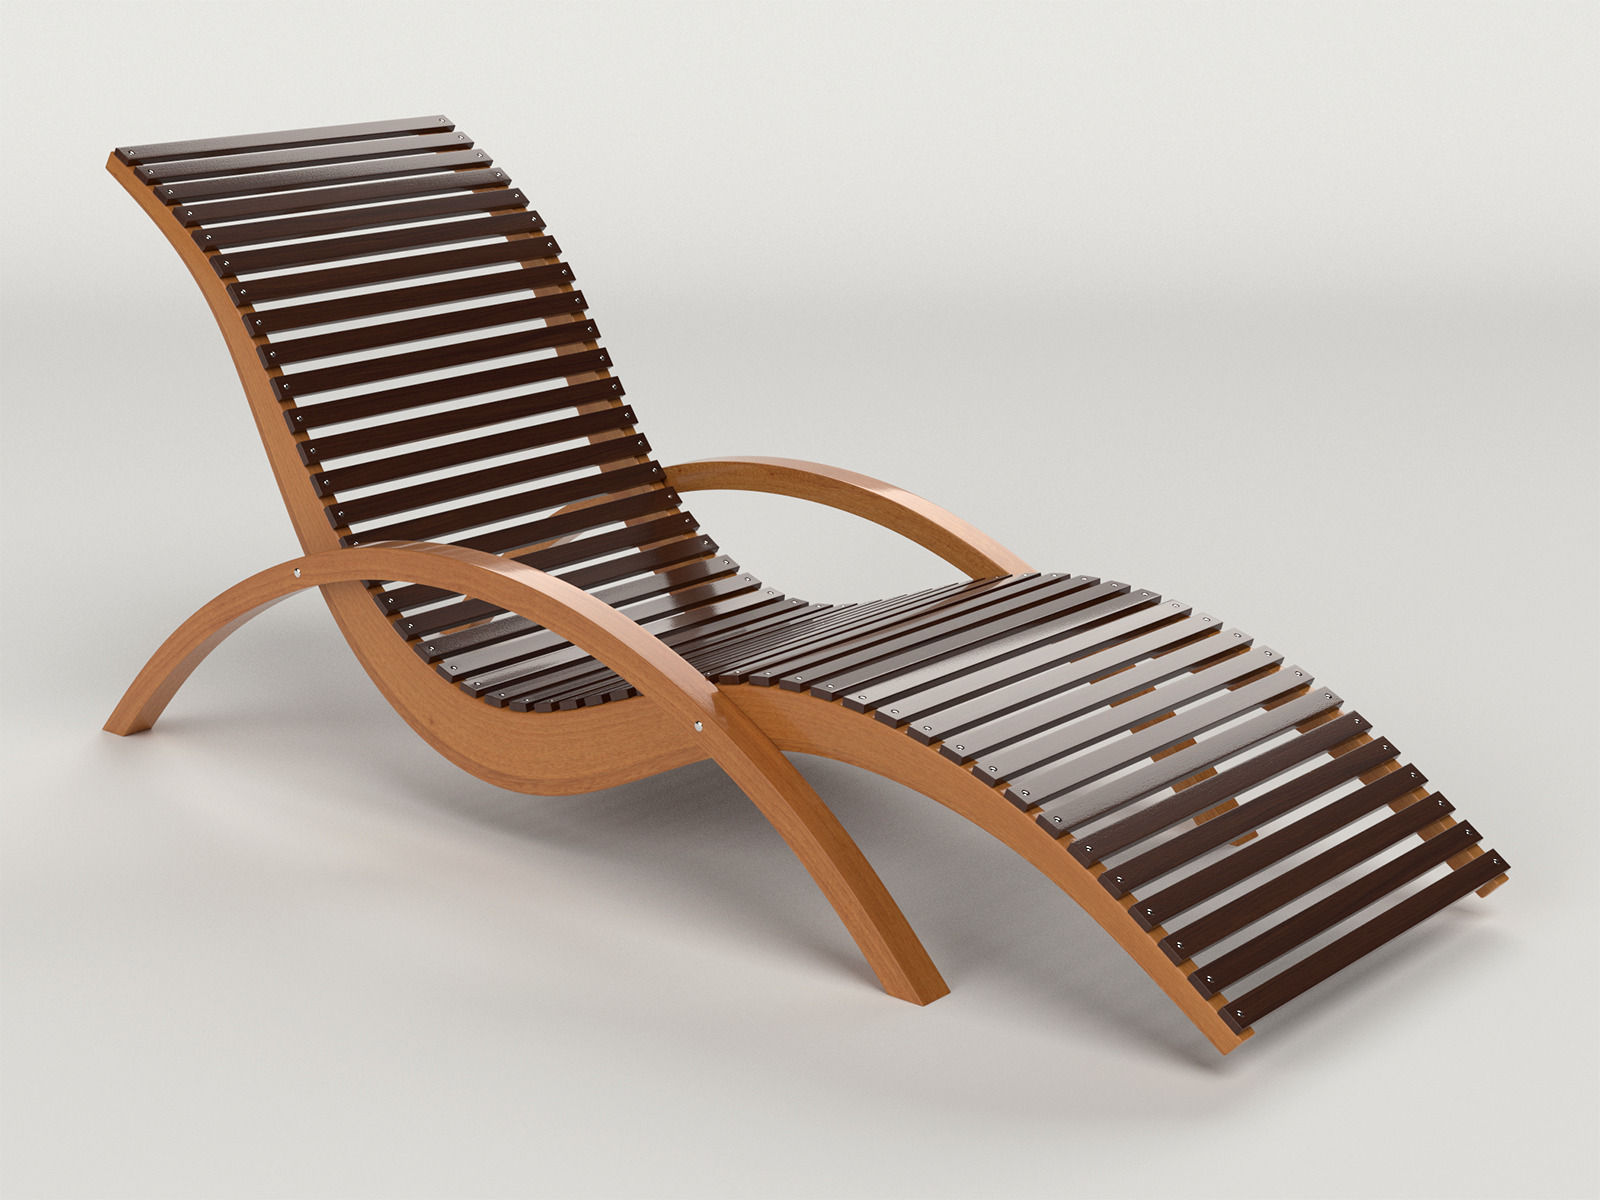 Lounge Chair Outdoor Wood Patio Deck 3D Model CGTrader Intended For Designs  5